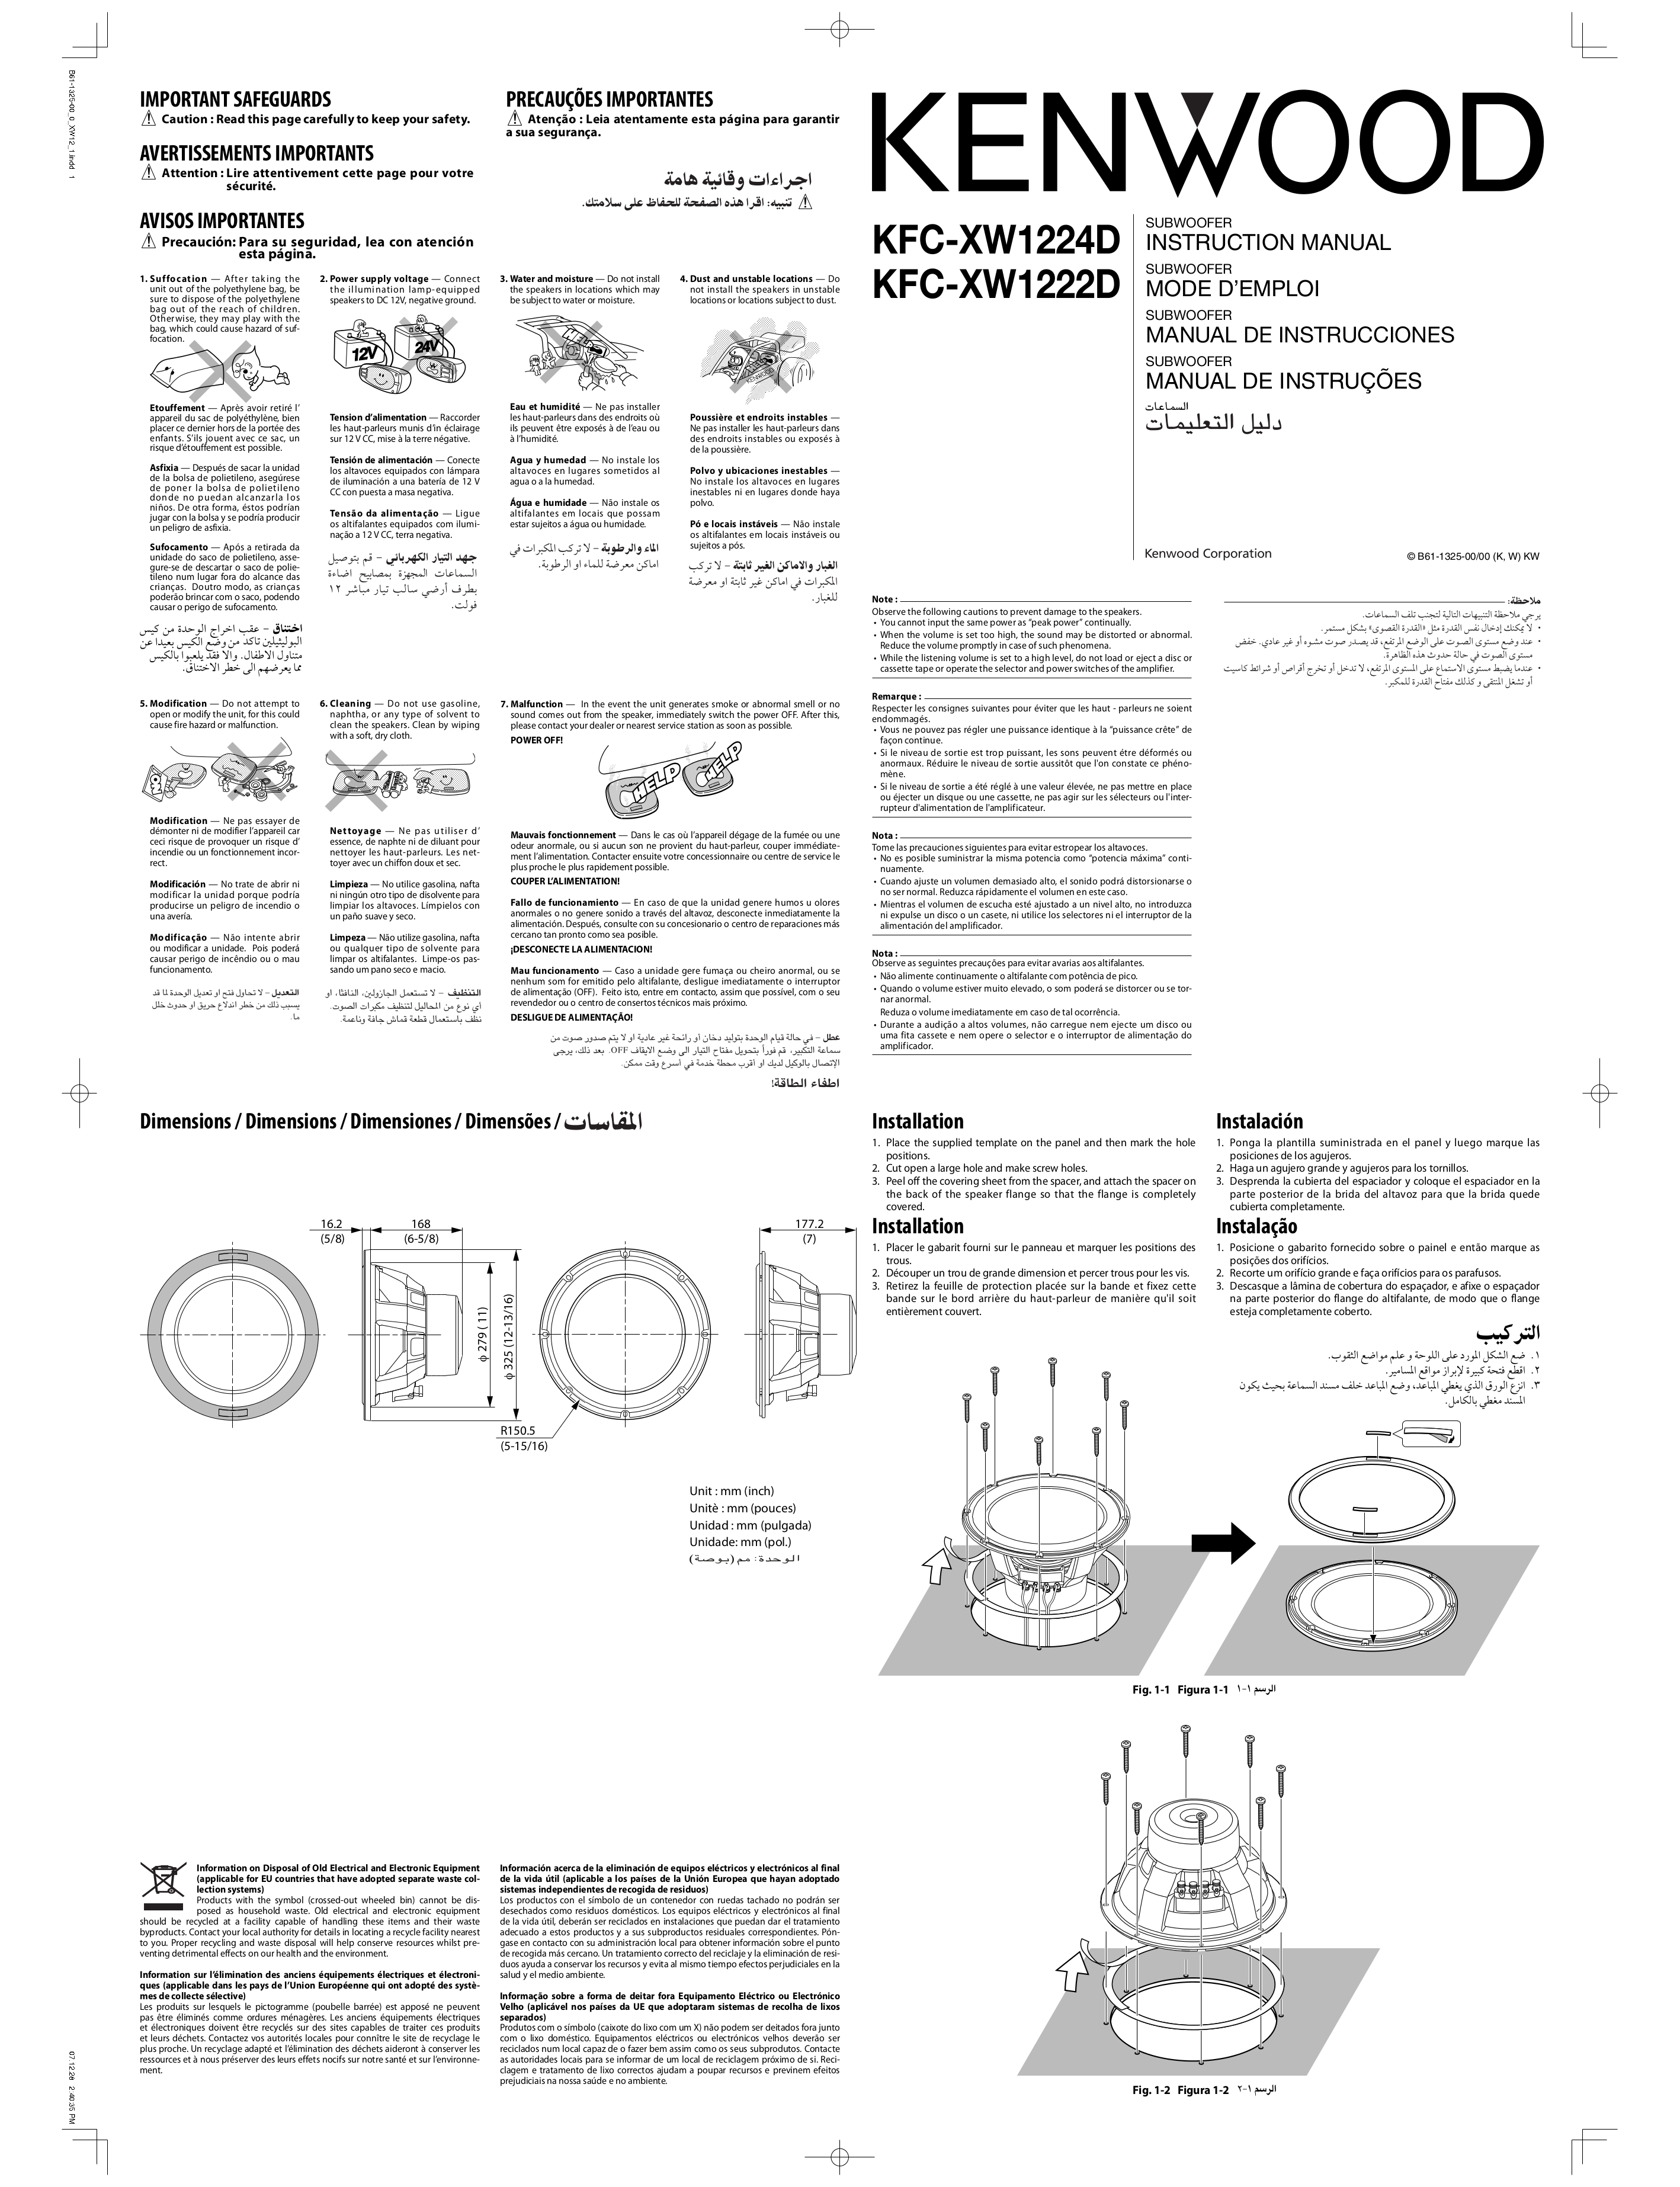 Download free pdf for kenwood kfc xw1224d subwoofer manual pdf for kenwood subwoofer kfc xw1224d manual sciox Gallery